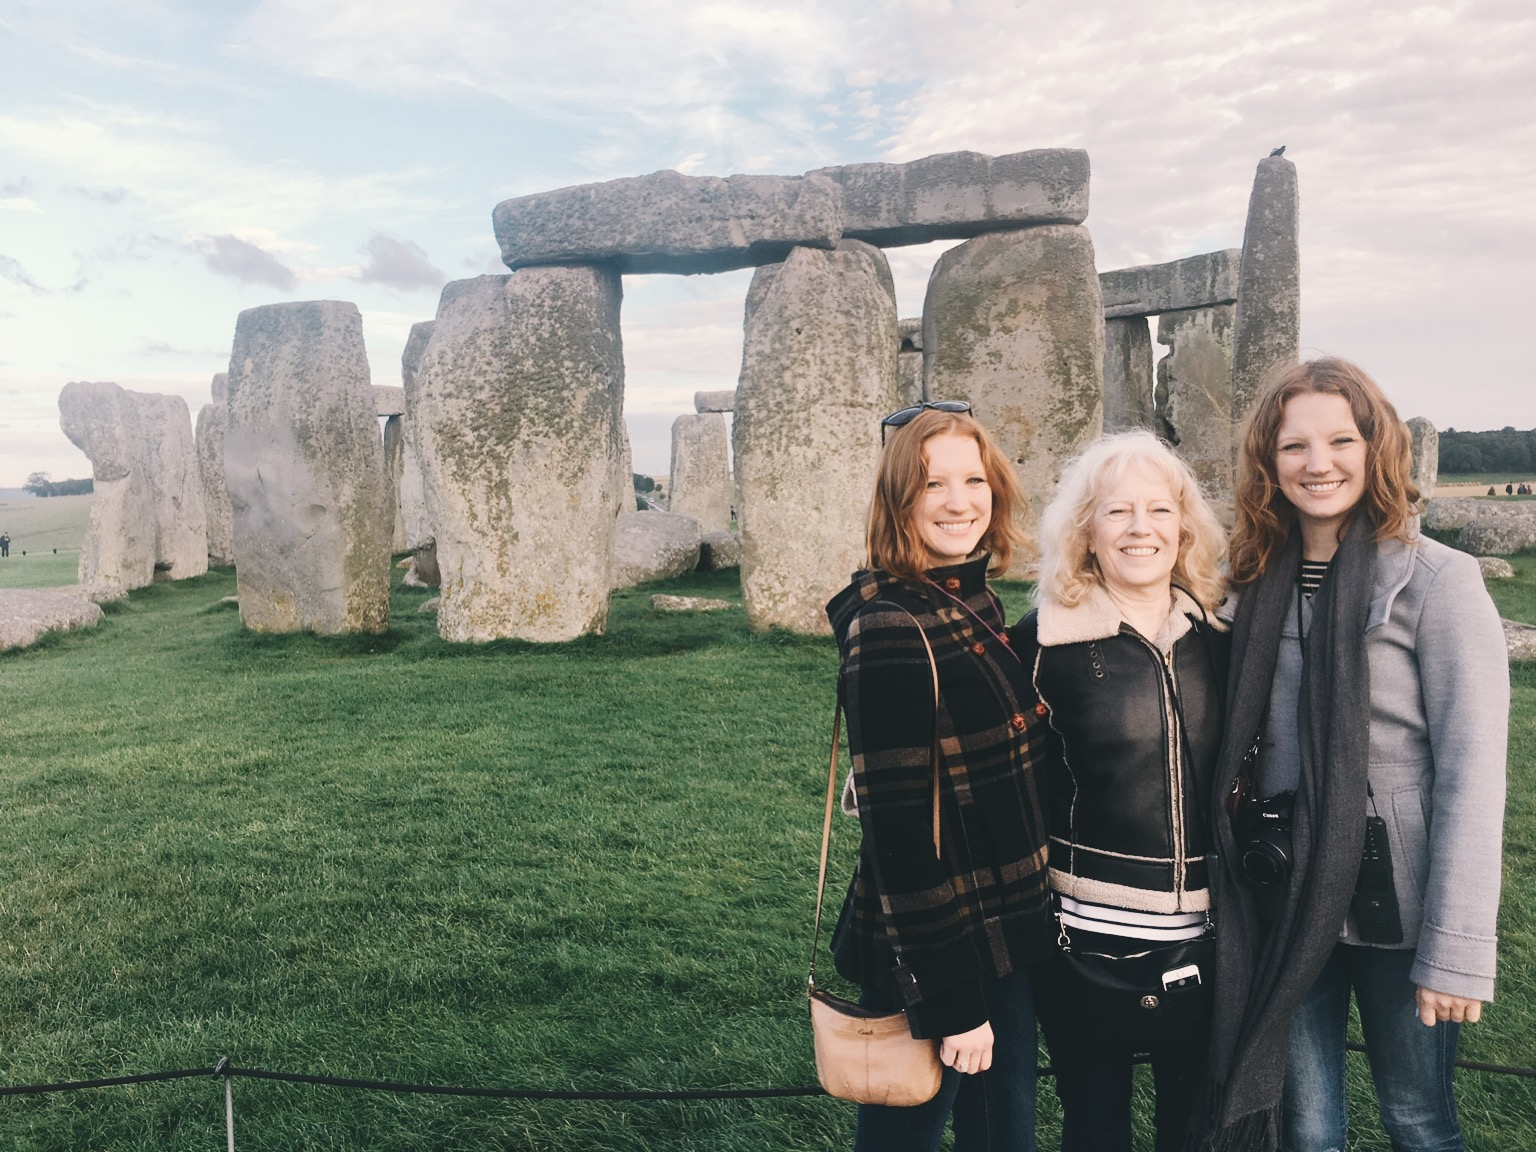 Family photo in front of Stonehenge in England